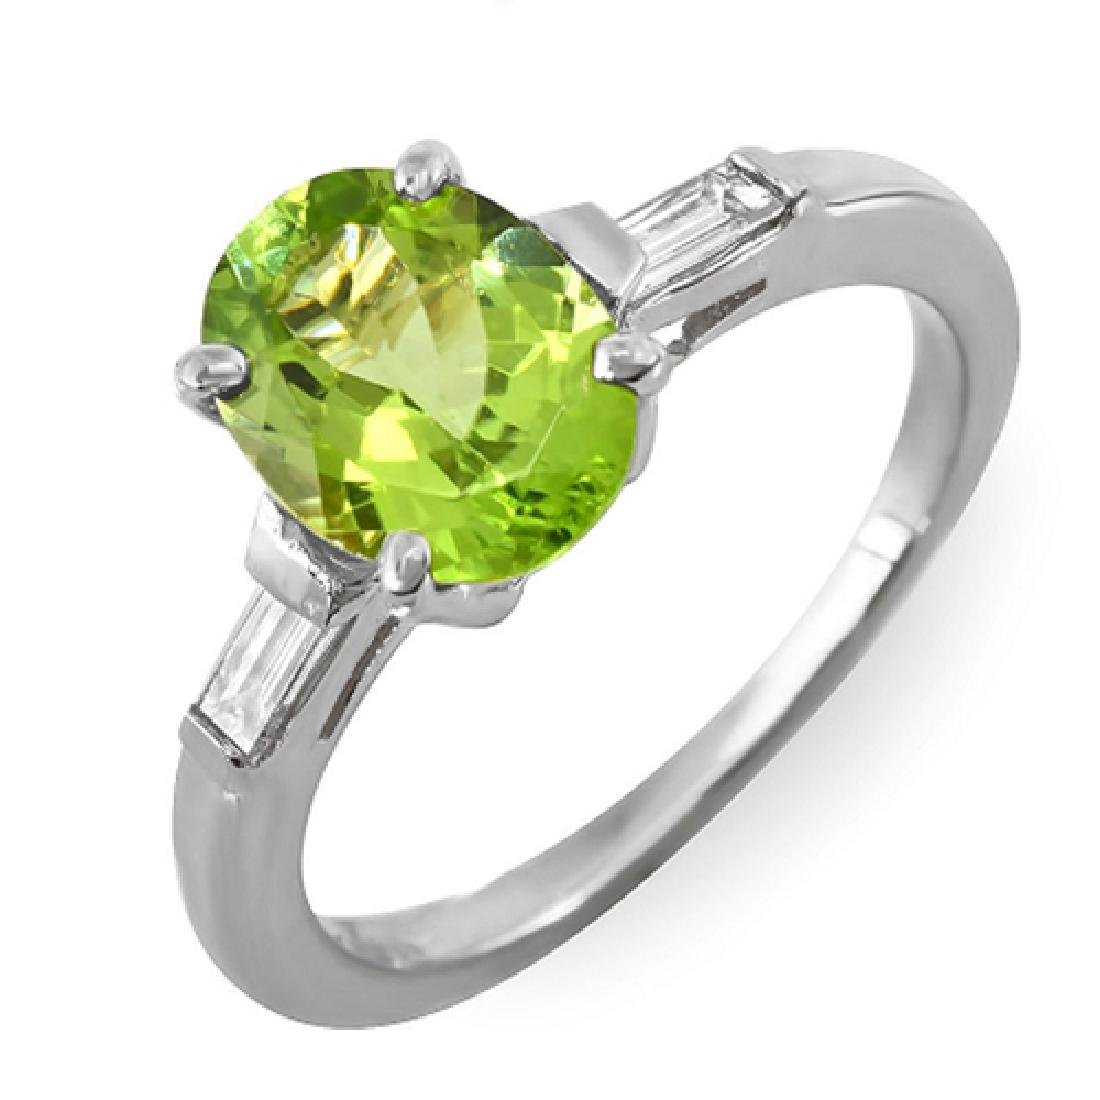 2.16 Carat Natural Peridot 18K Solid White Gold Diamond - 2